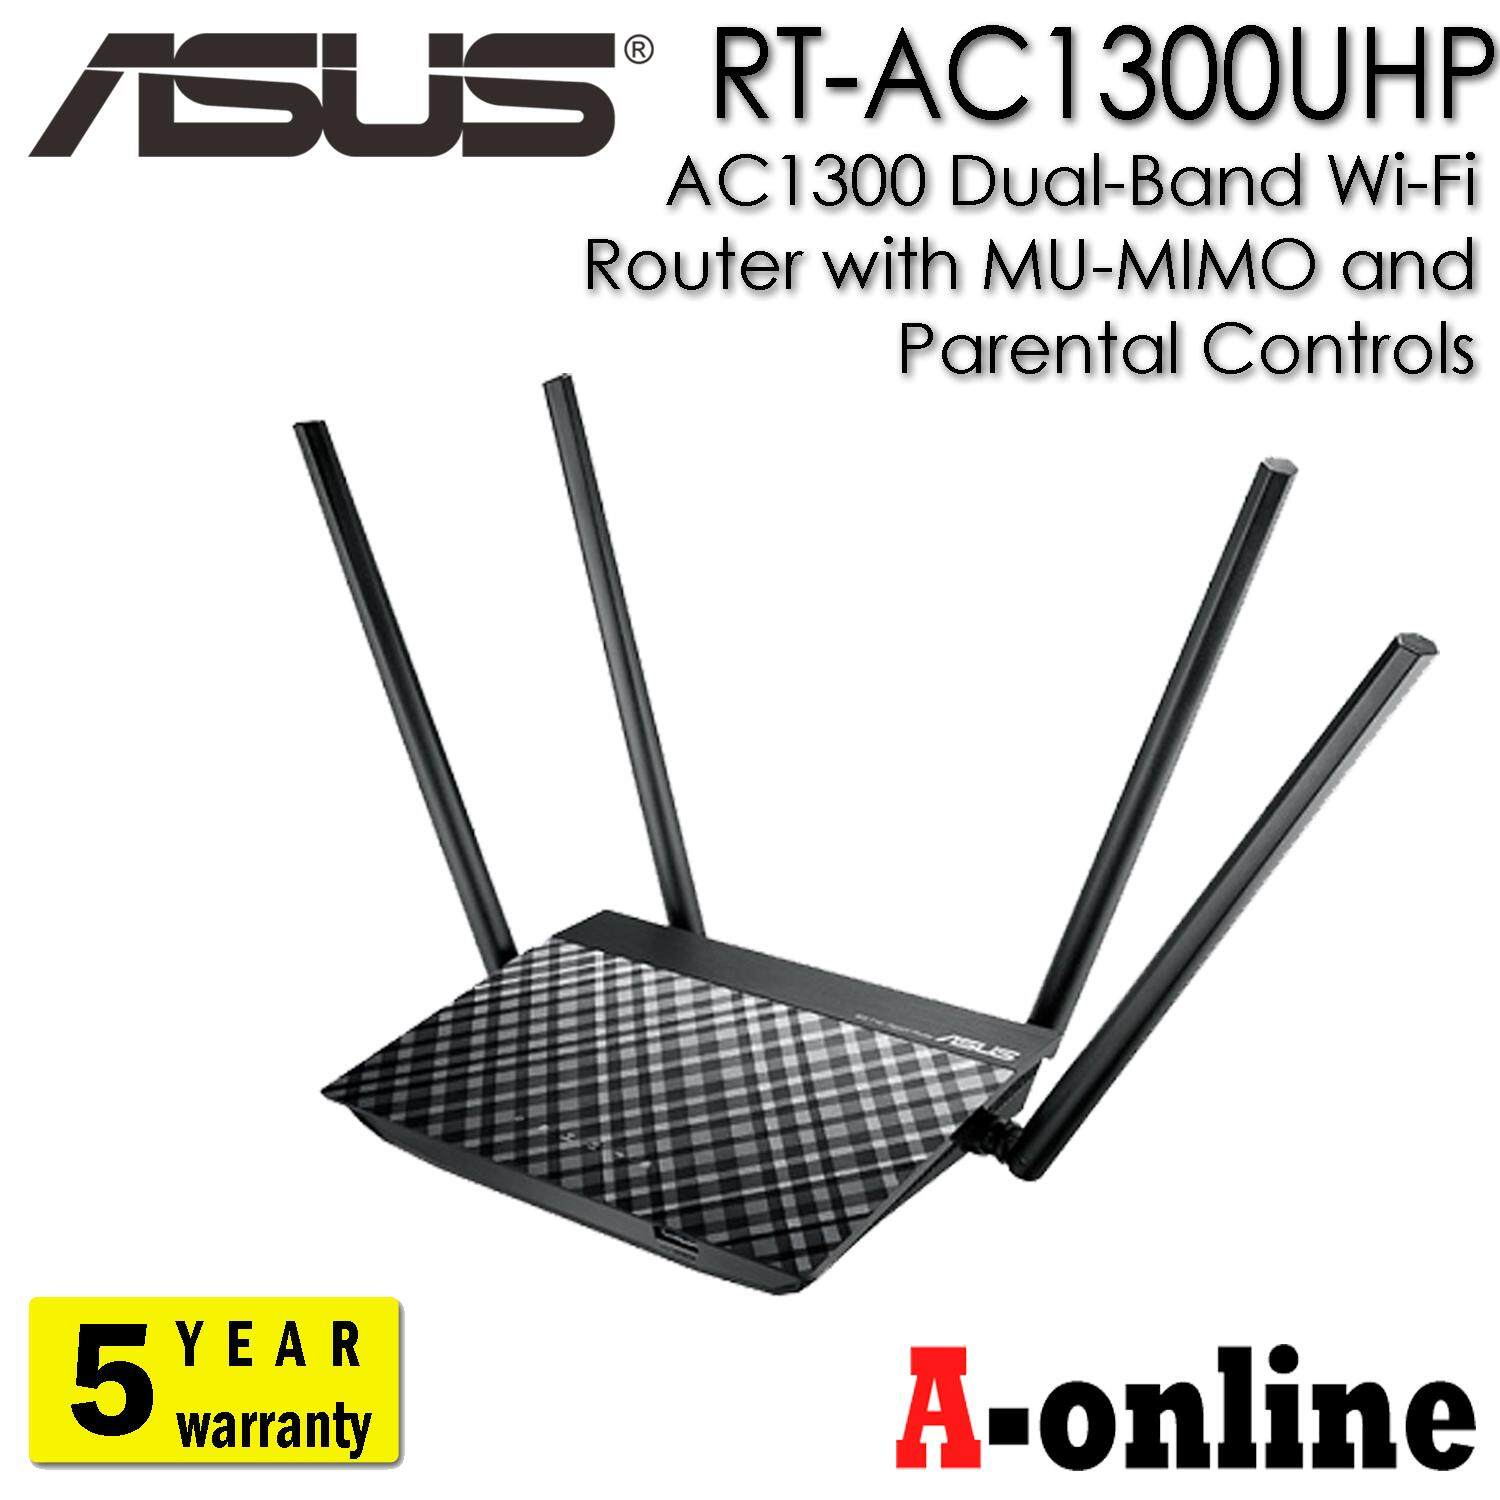 Asus Rt-Ac1300uhp Ac1300 Dual-Band Wi-Fi Router With Mu-Mimo And Parental Controls/aonline.